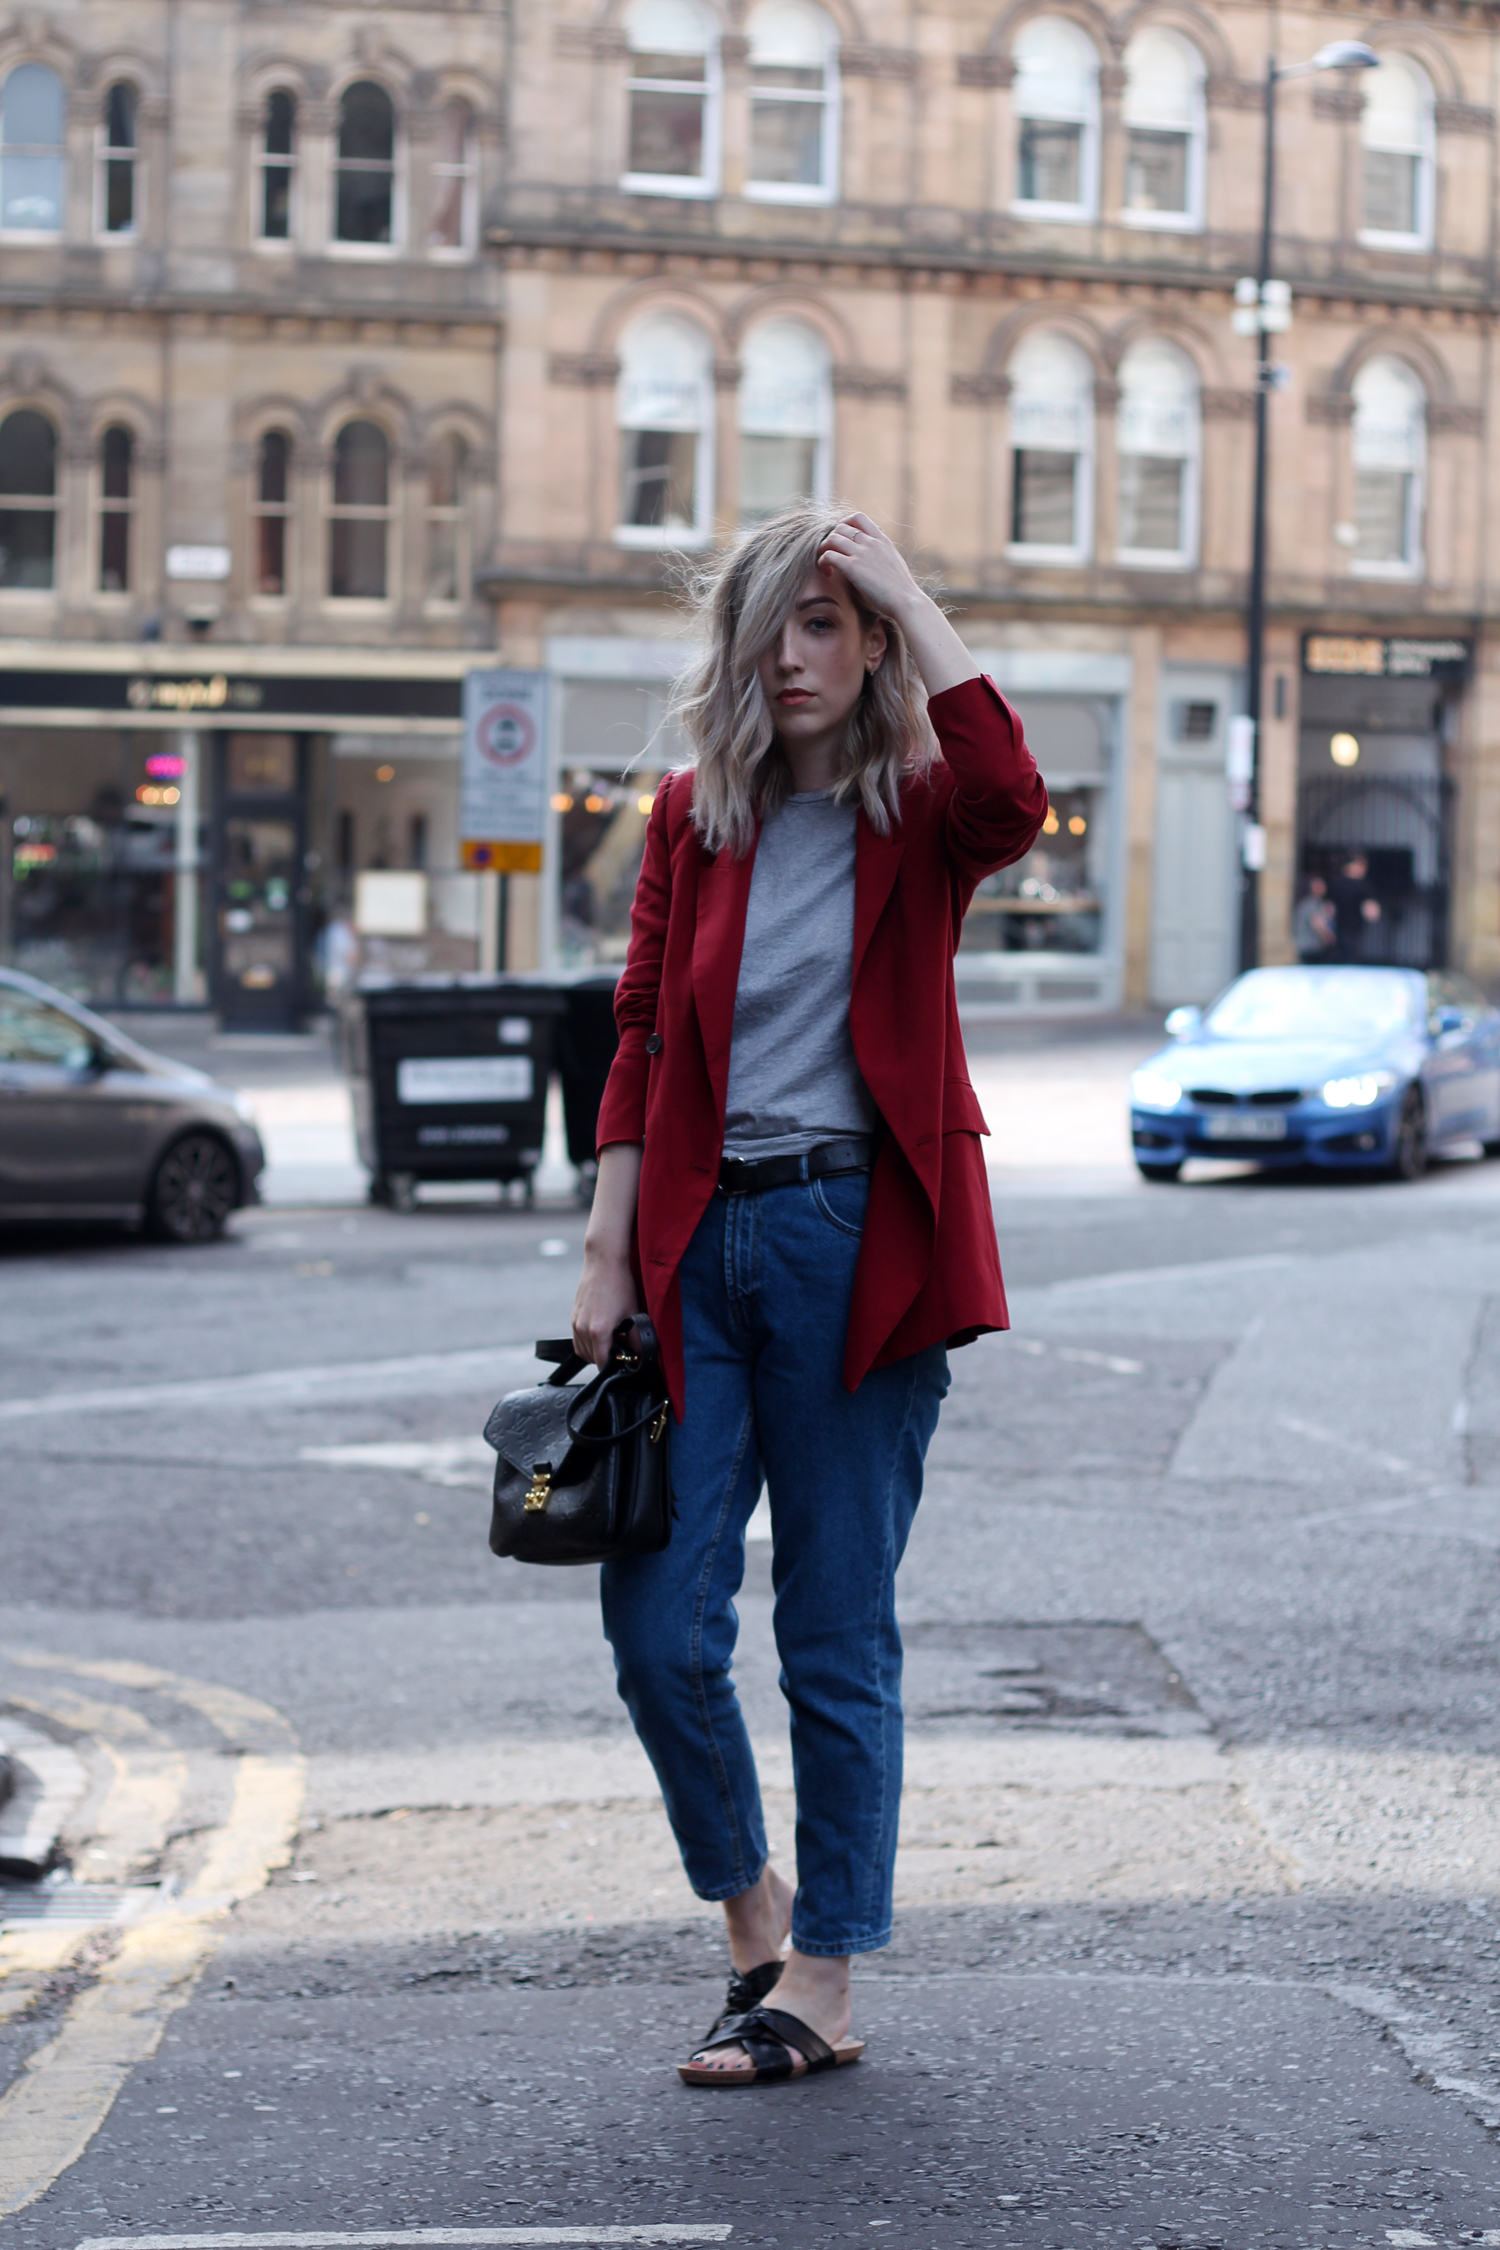 zara-red-blazer-mom-jeans-louis-mochette-metis-4